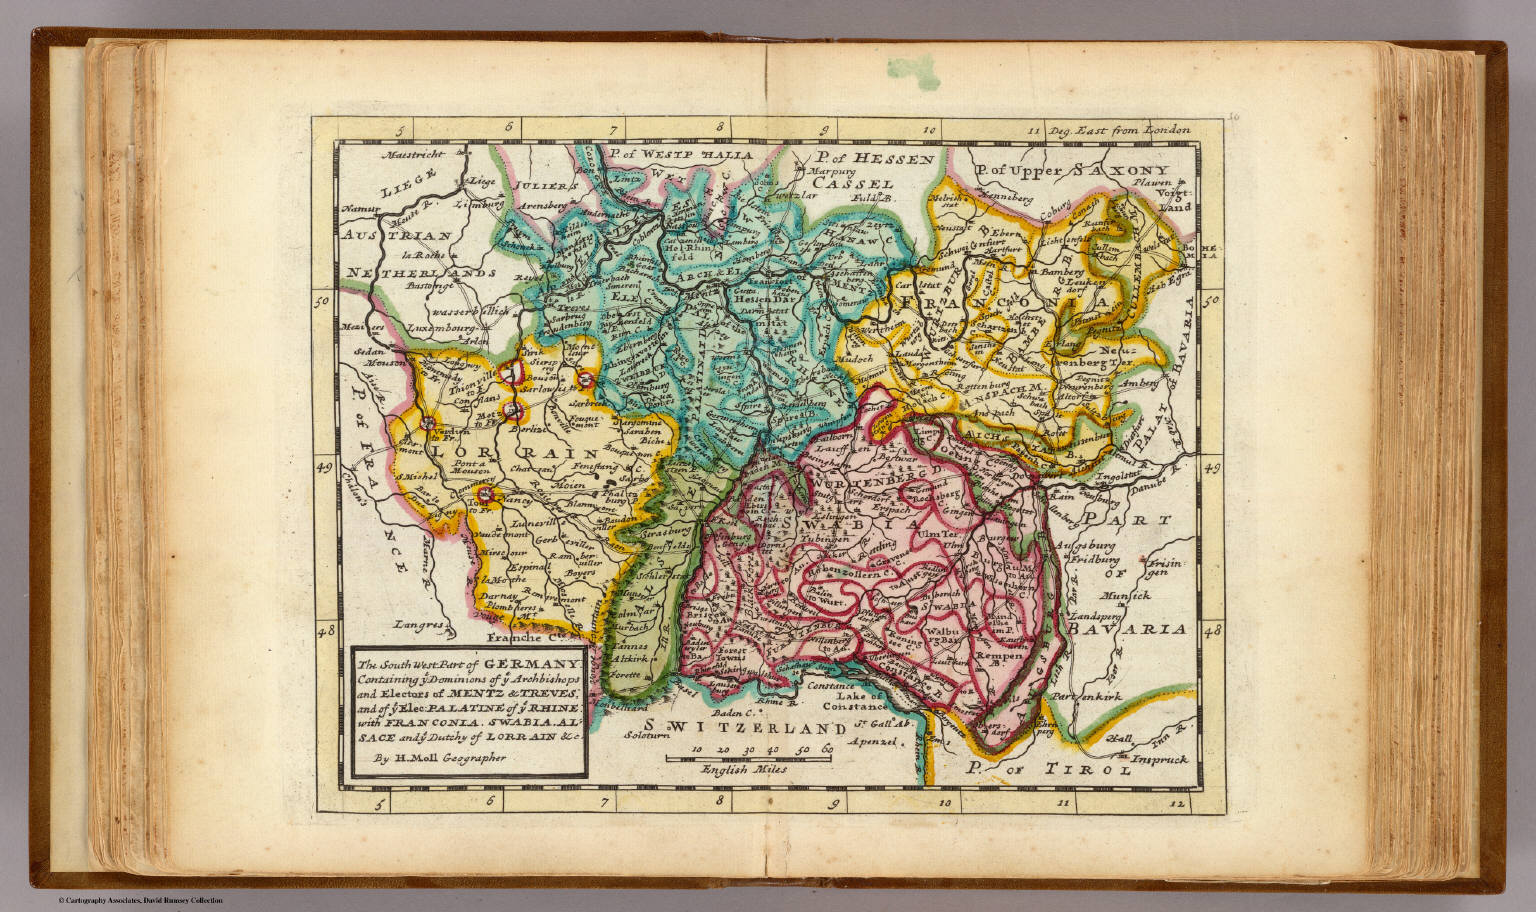 The South West Part Of Germany David Rumsey Historical Map Collection